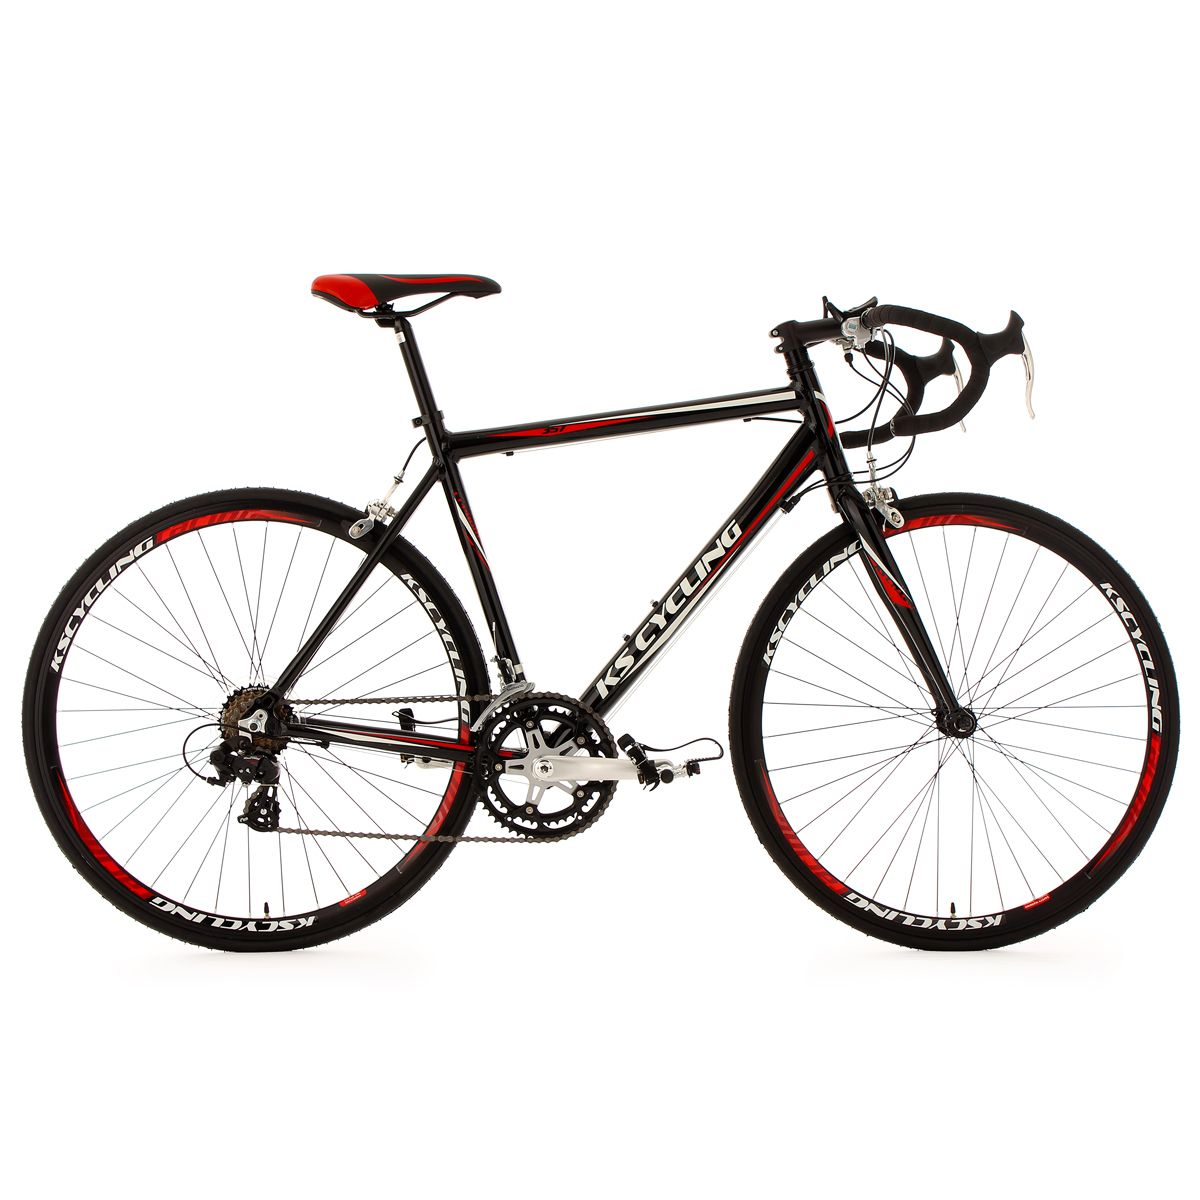 Vélo de course 28 » euphoria noir tc 53 cm ks cycling Ks